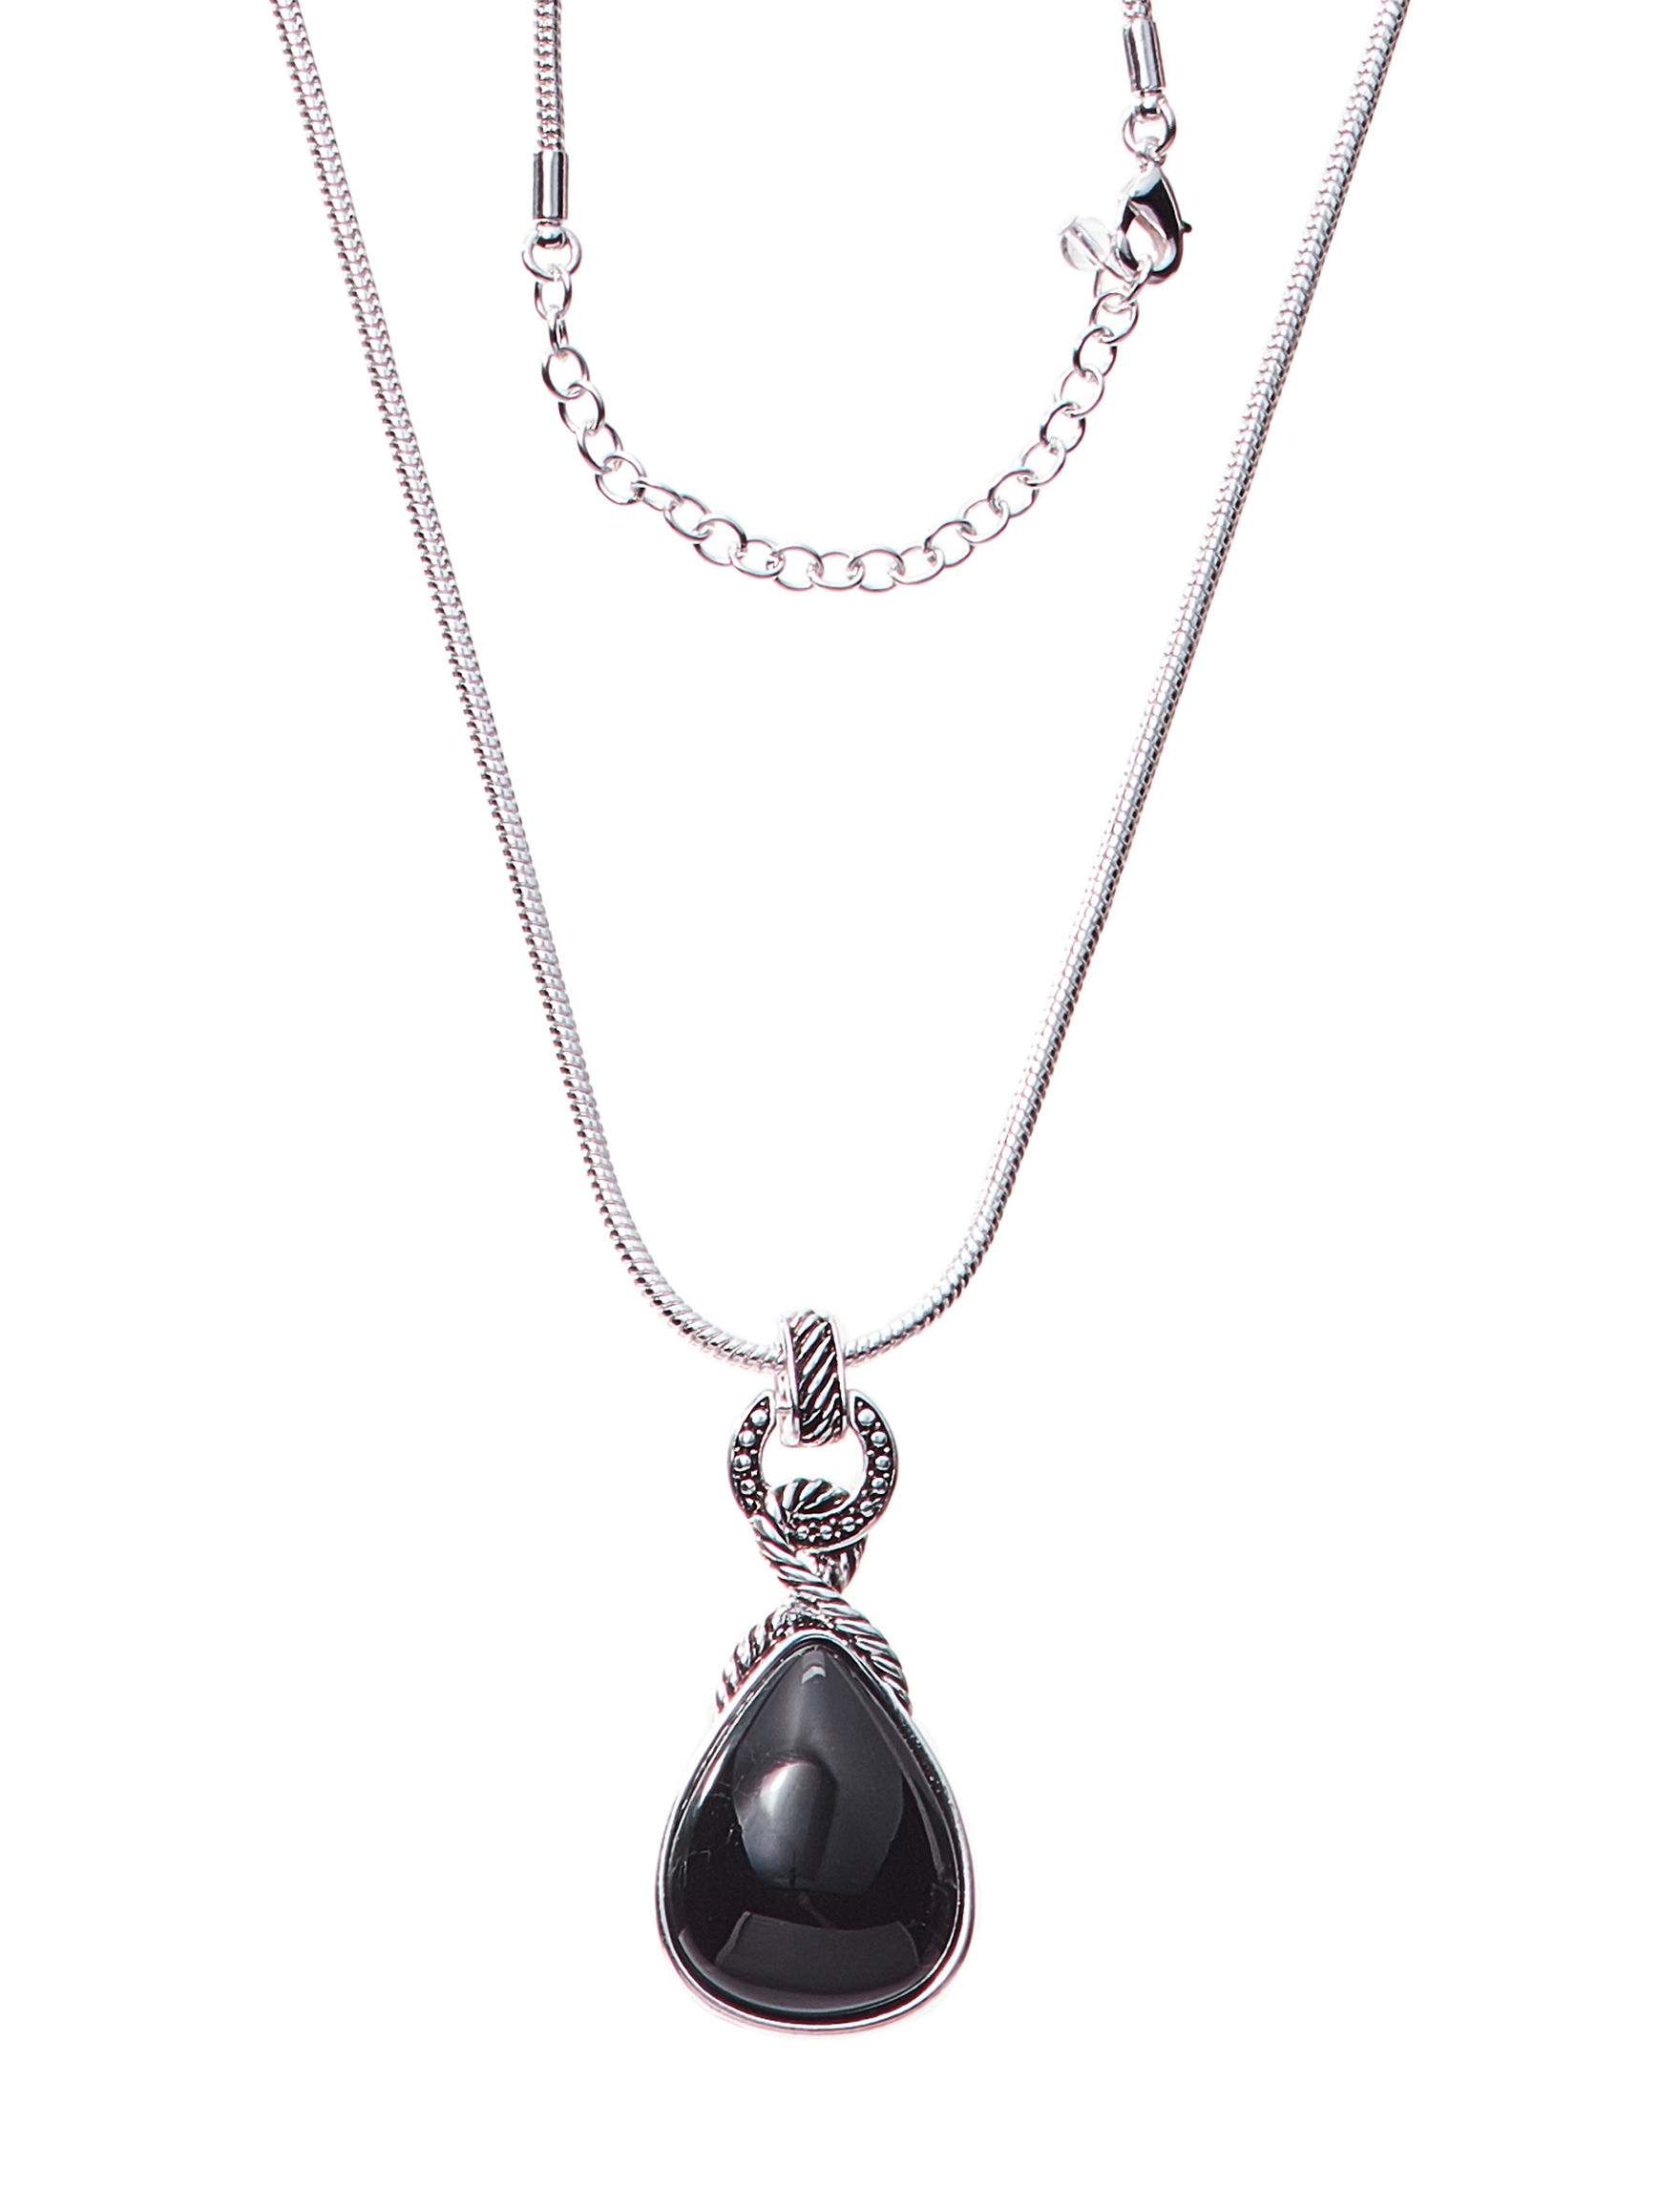 Napier Black Stone Necklaces & Pendants Fashion Jewelry